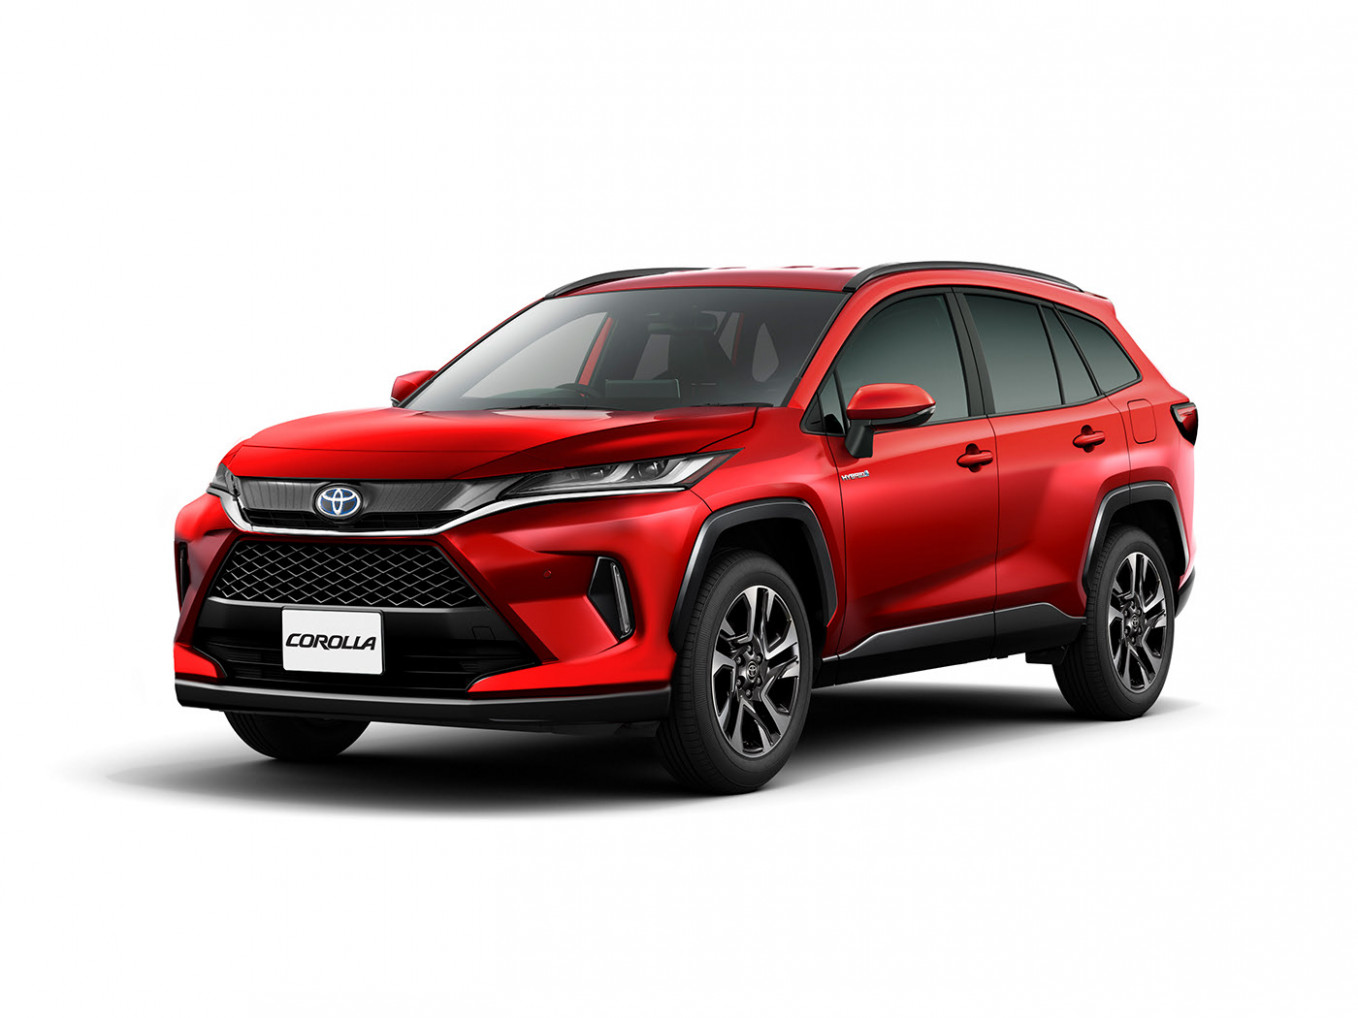 Images When Will The 2022 Toyota Corolla Be Available